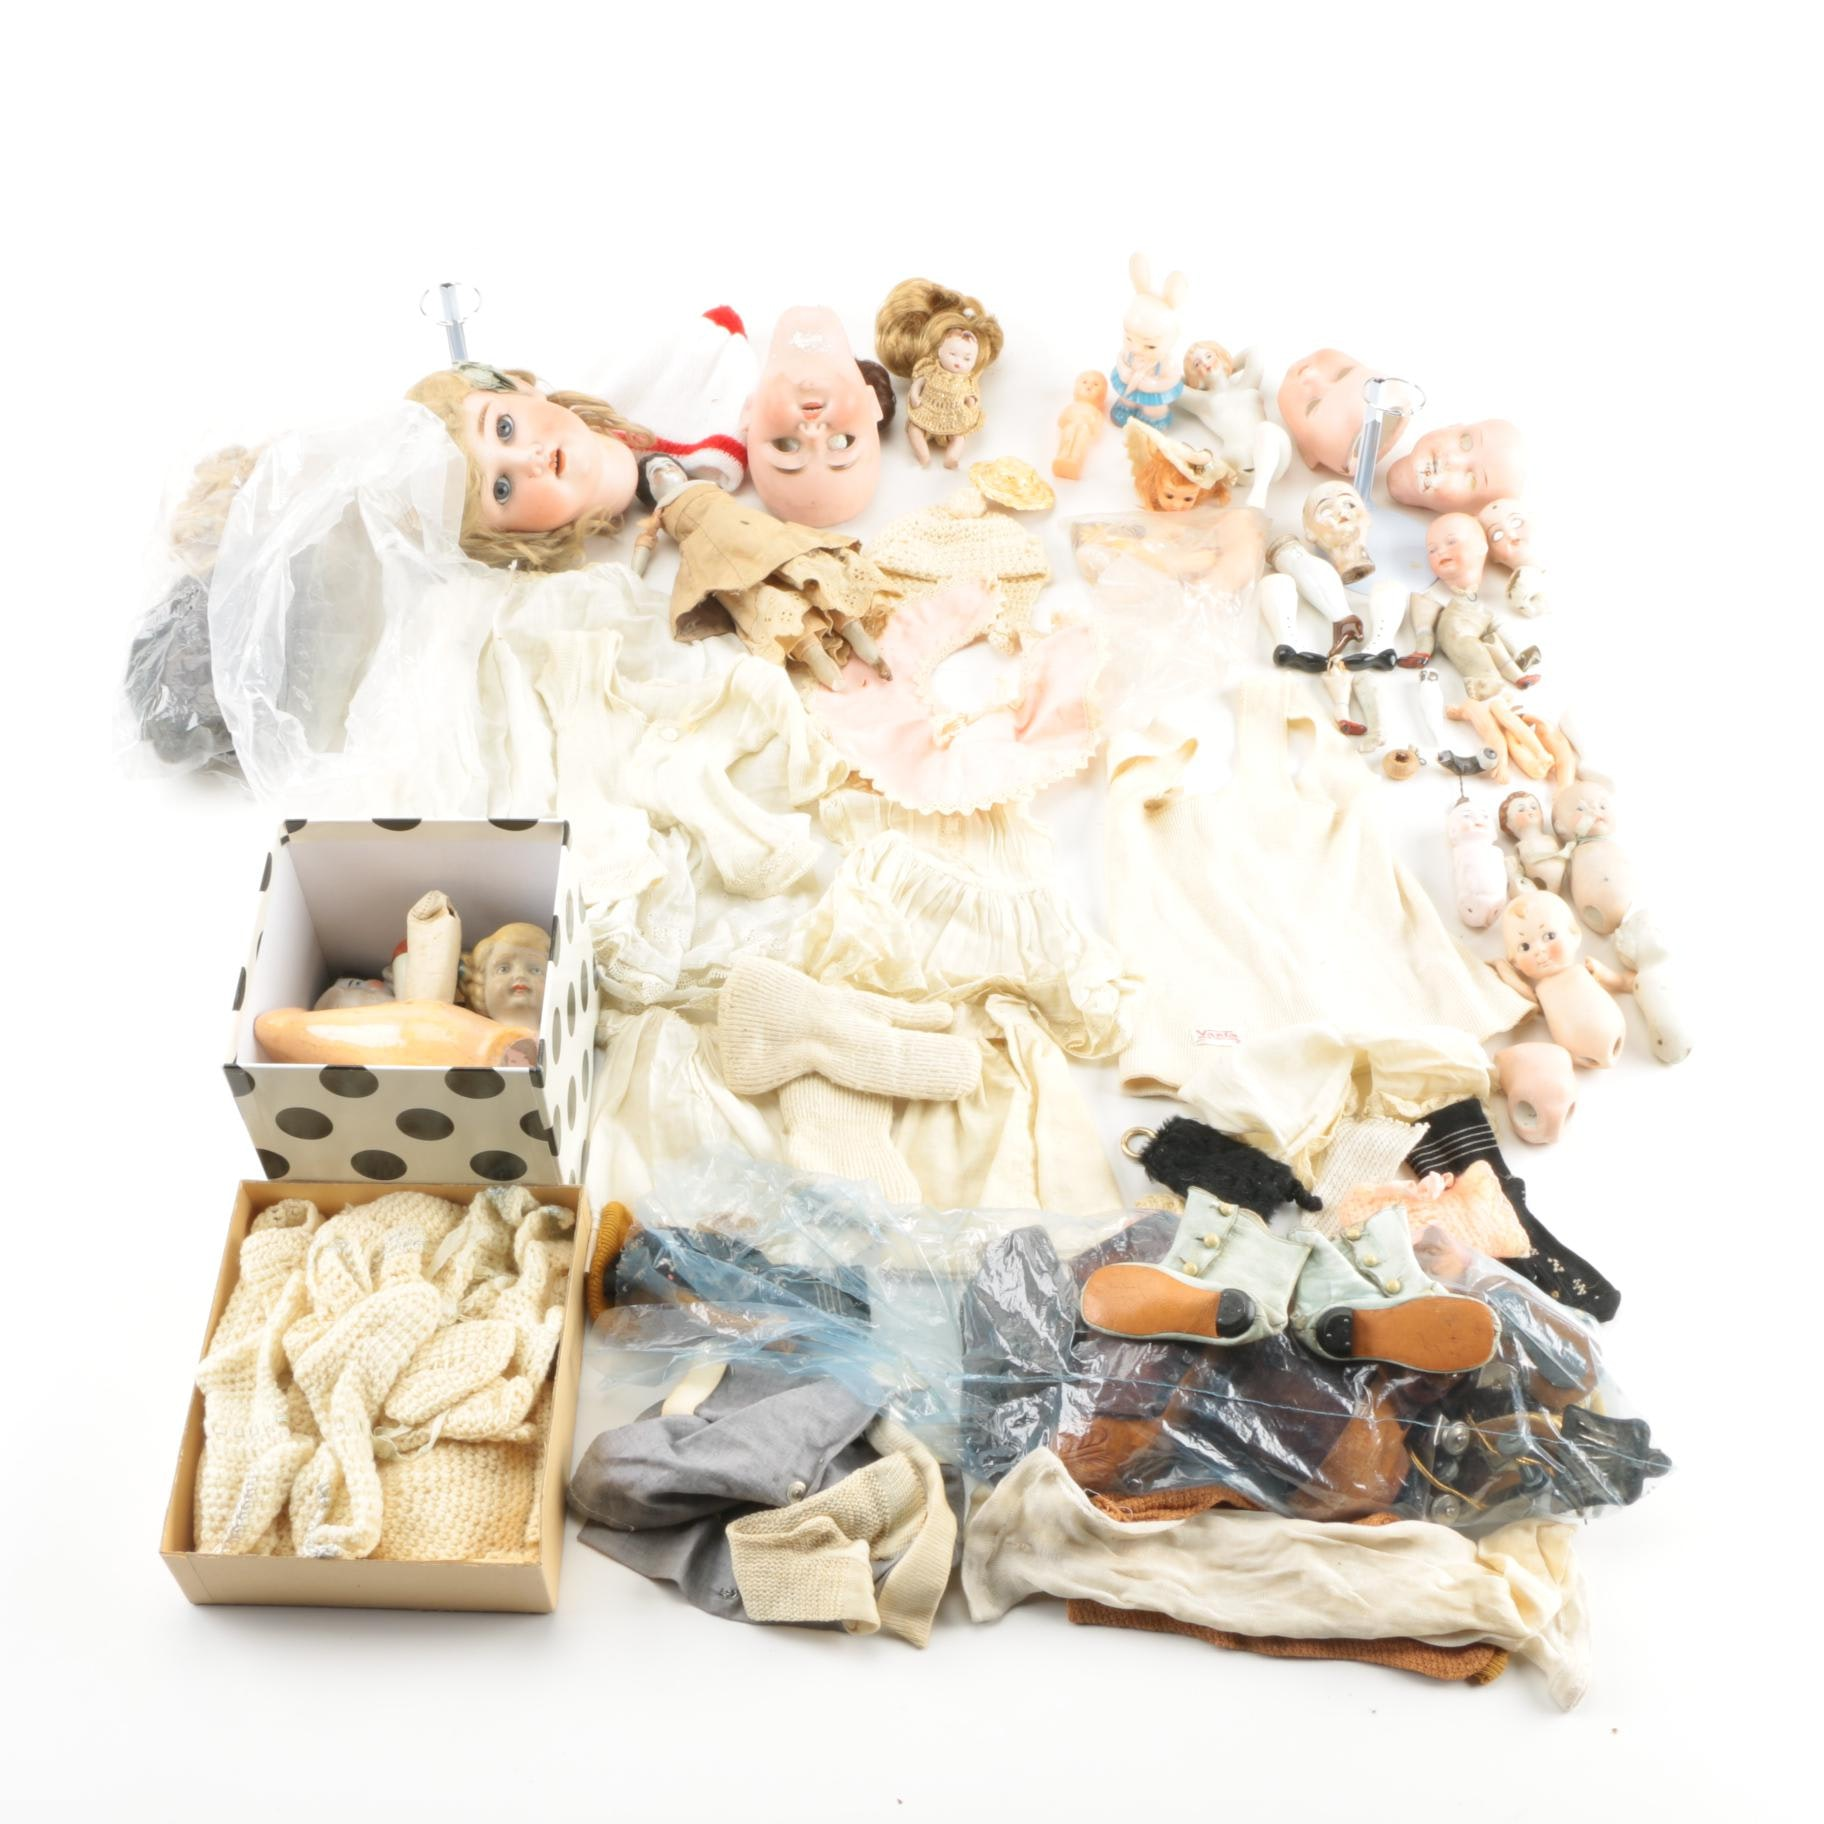 Doll Pieces and Accessories